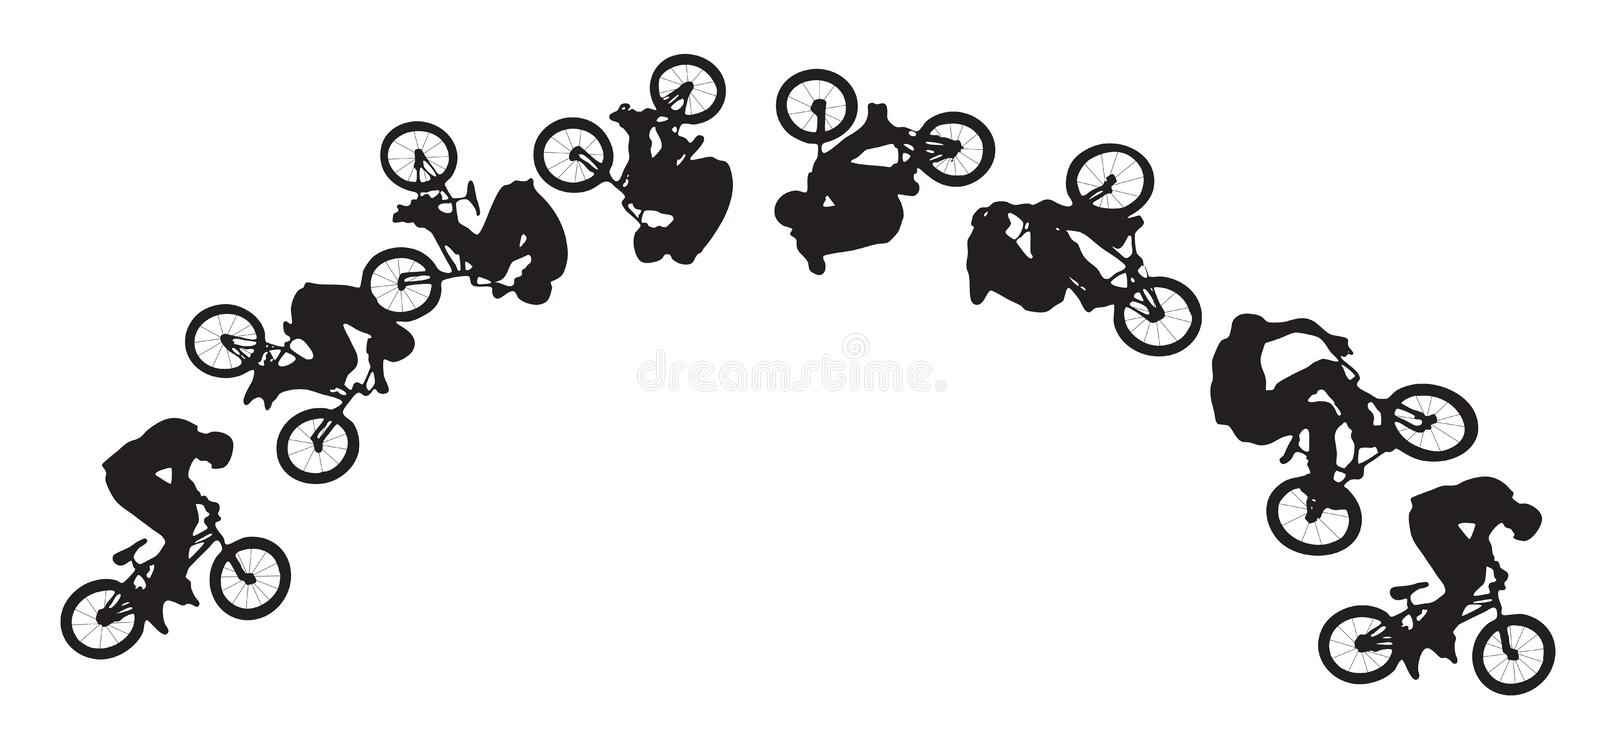 Bike jumping sequence vector illustration